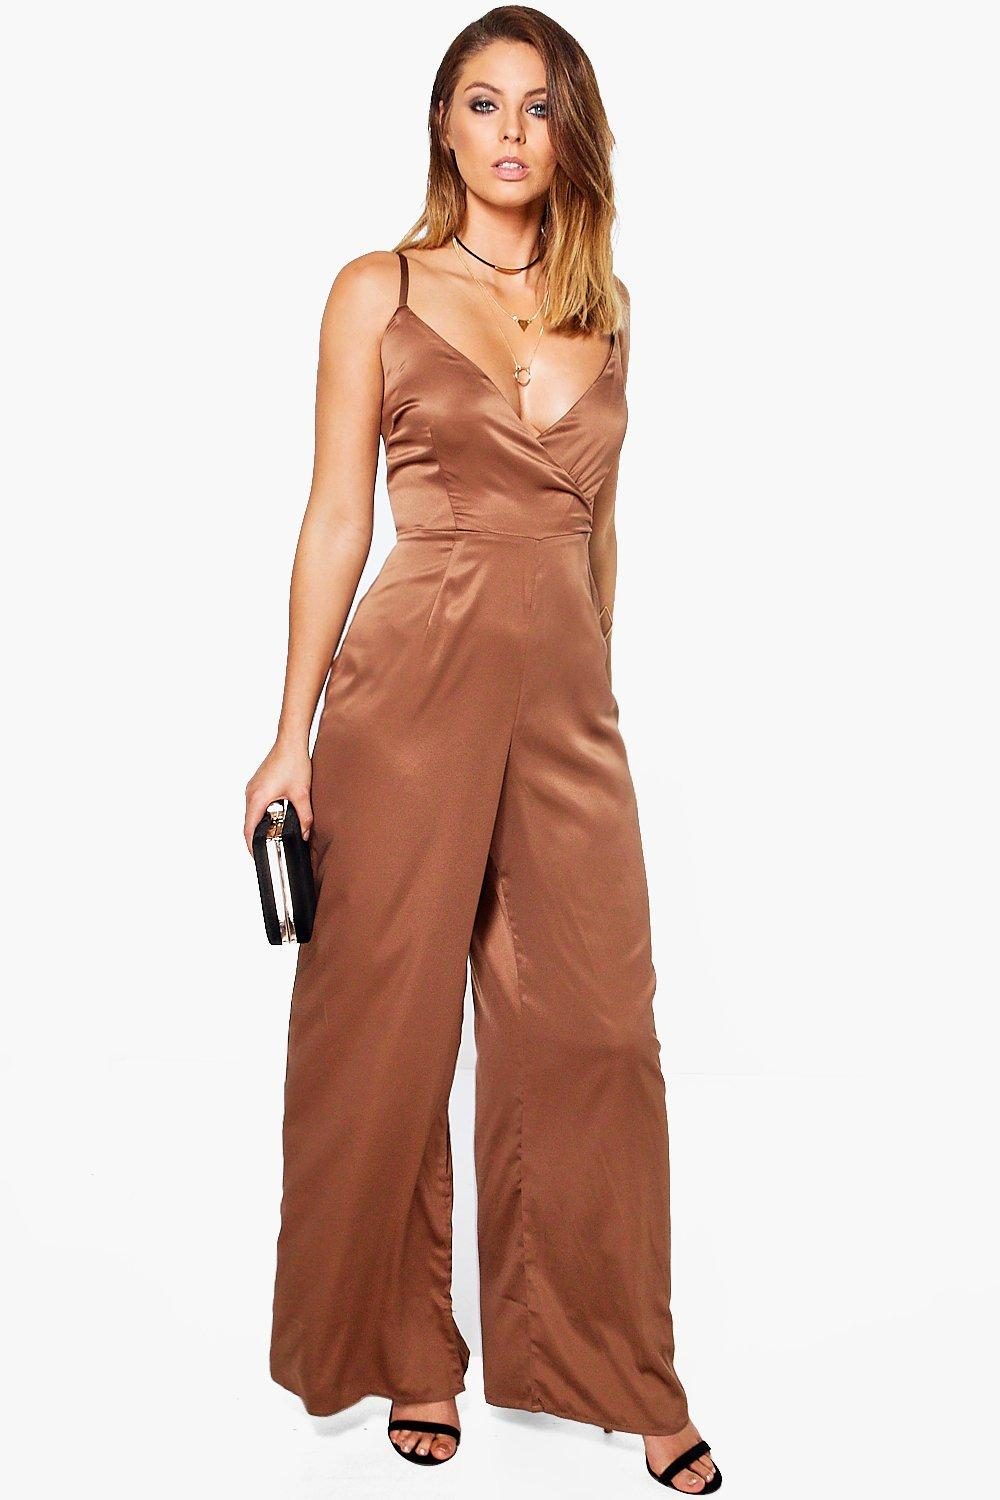 Boohoo Womens Lucy Wrap Front Strappy Satin Jumpsuit | eBay